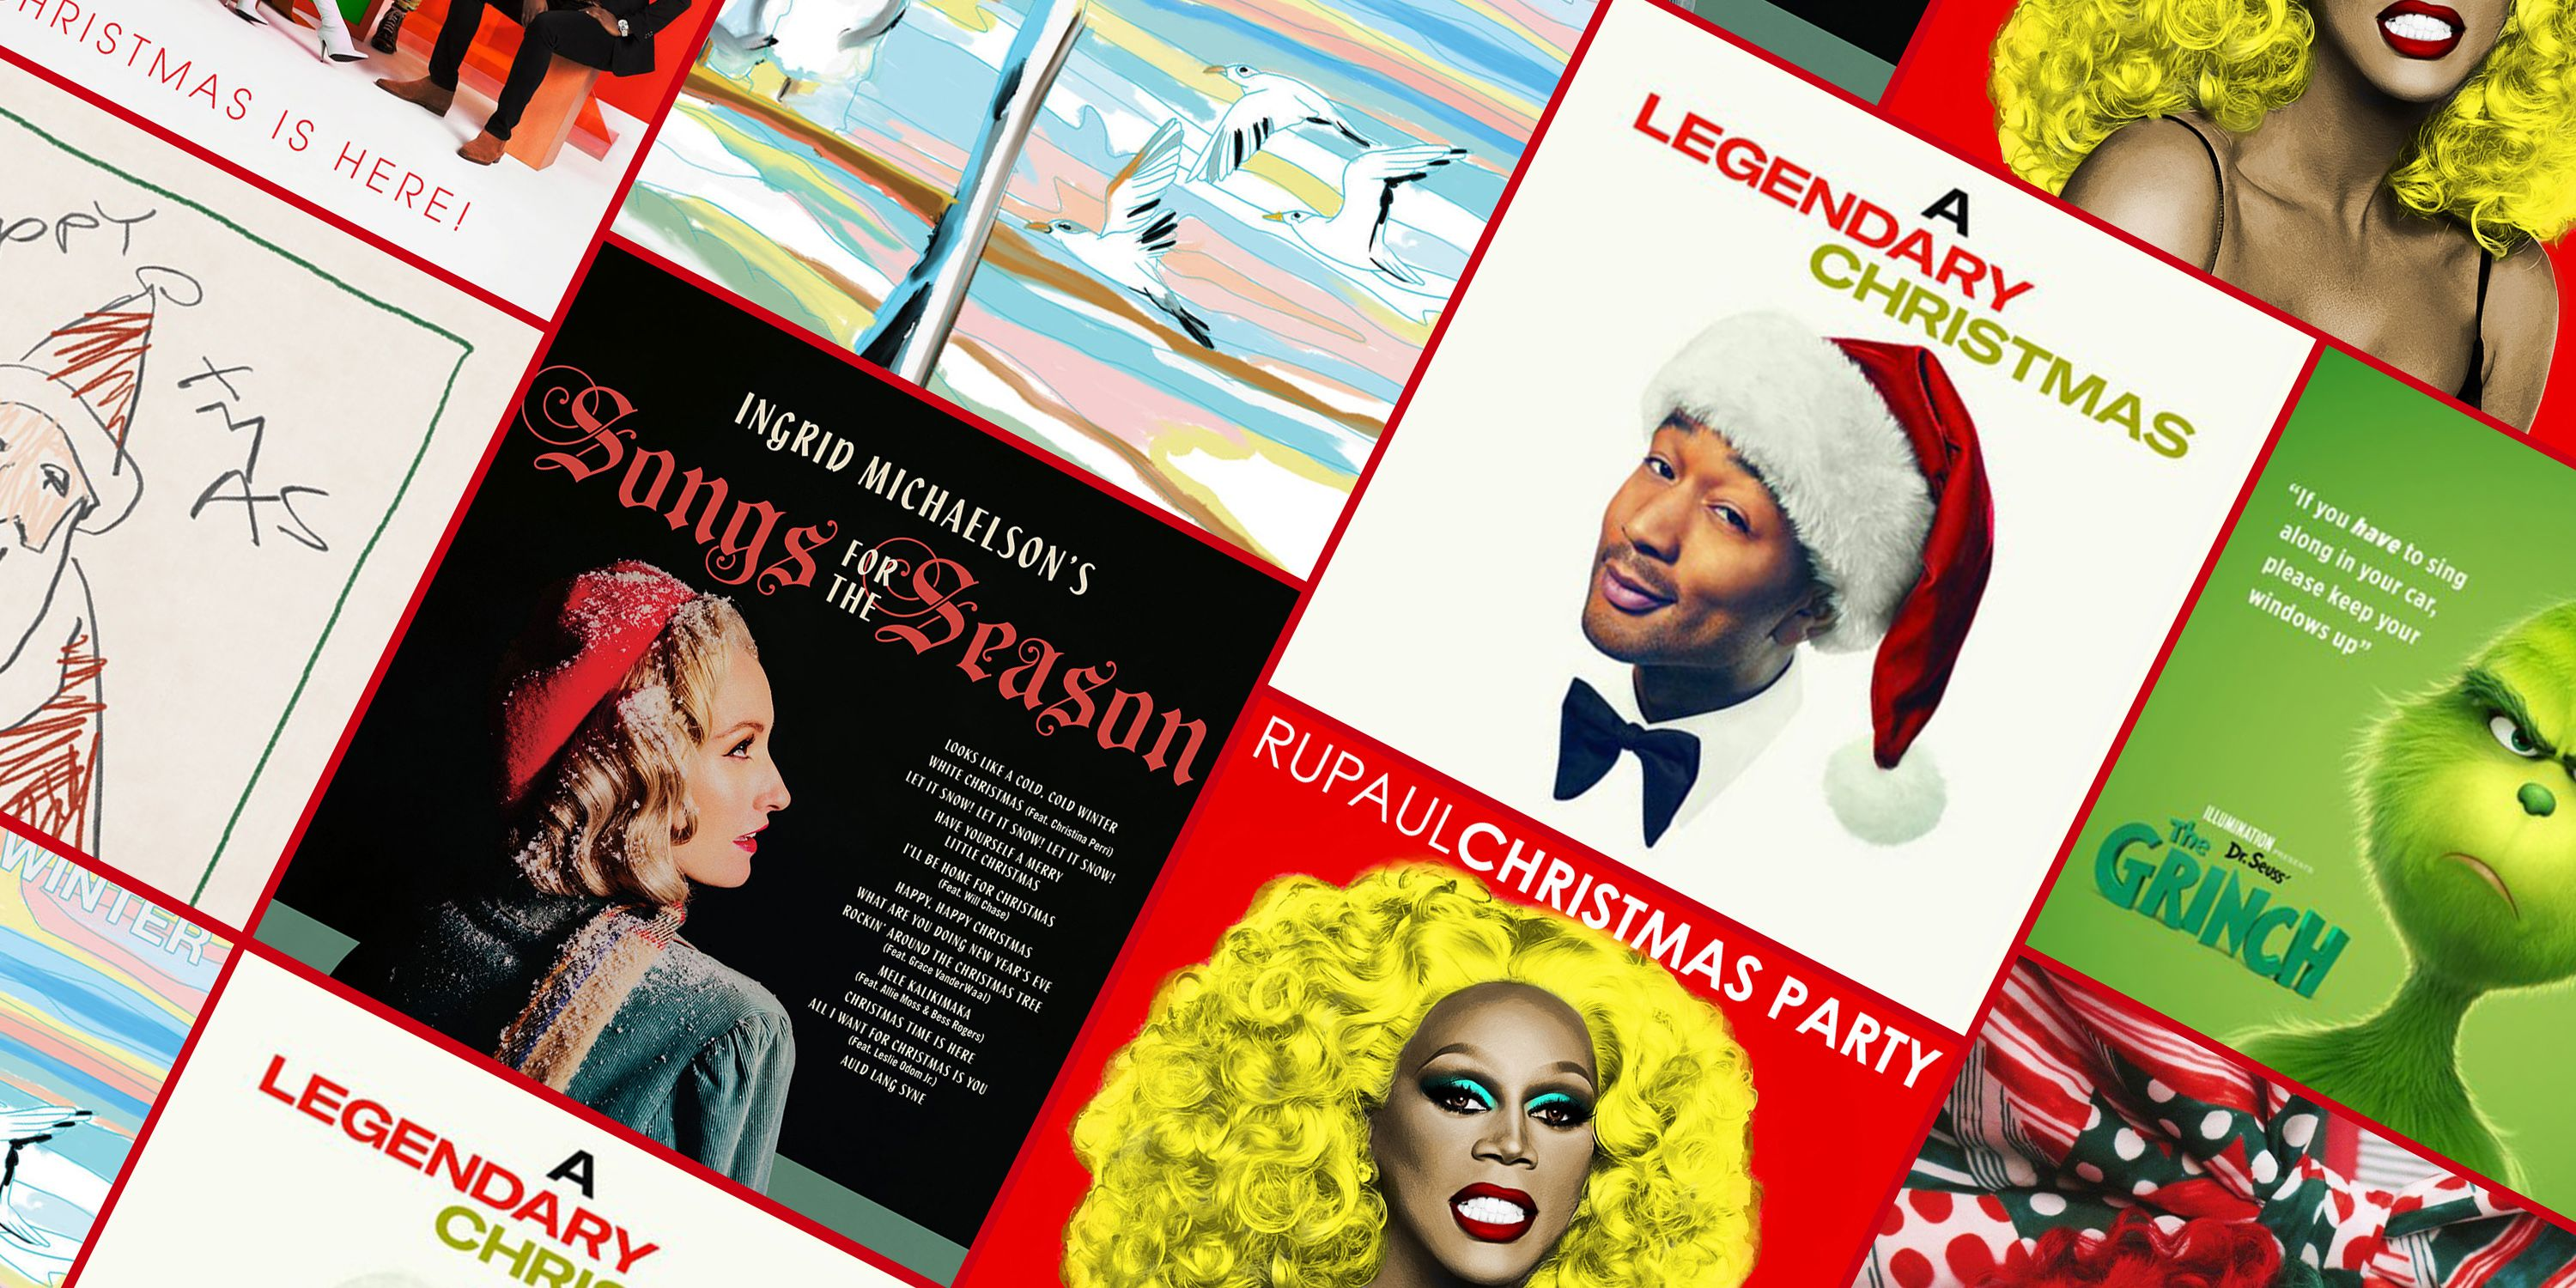 13 Best Christmas Songs of 2018 - New Songs for Your Holiday